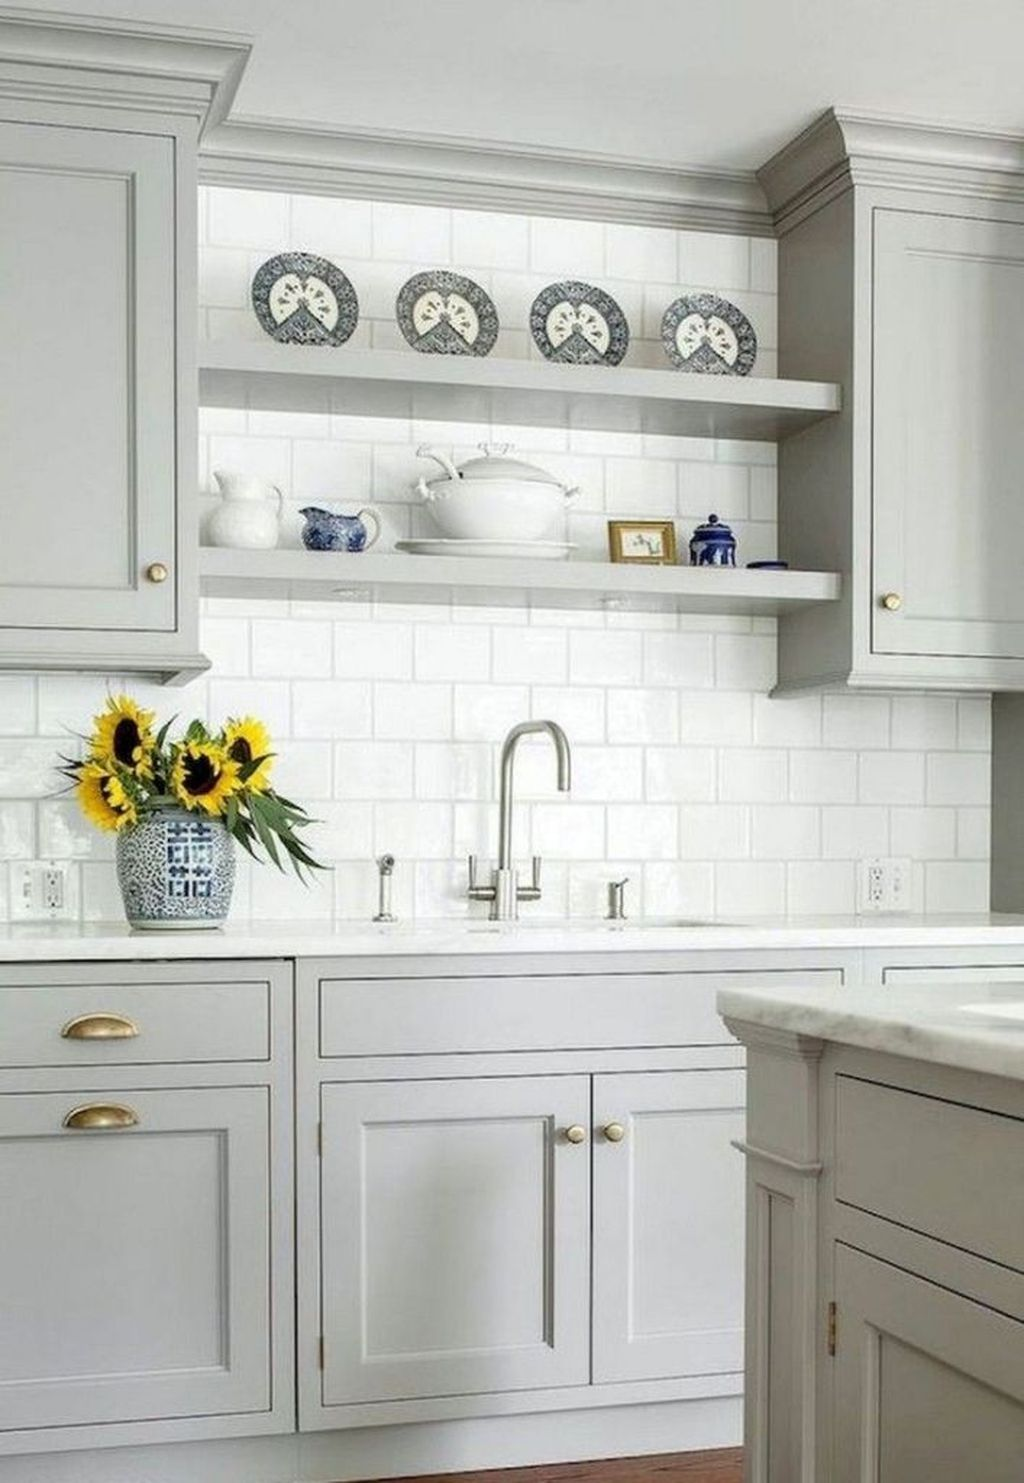 Pin By Amanda George On Inredning New Kitchen Cabinets Kitchen Cabinets Makeover Grey Kitchen Cabinets